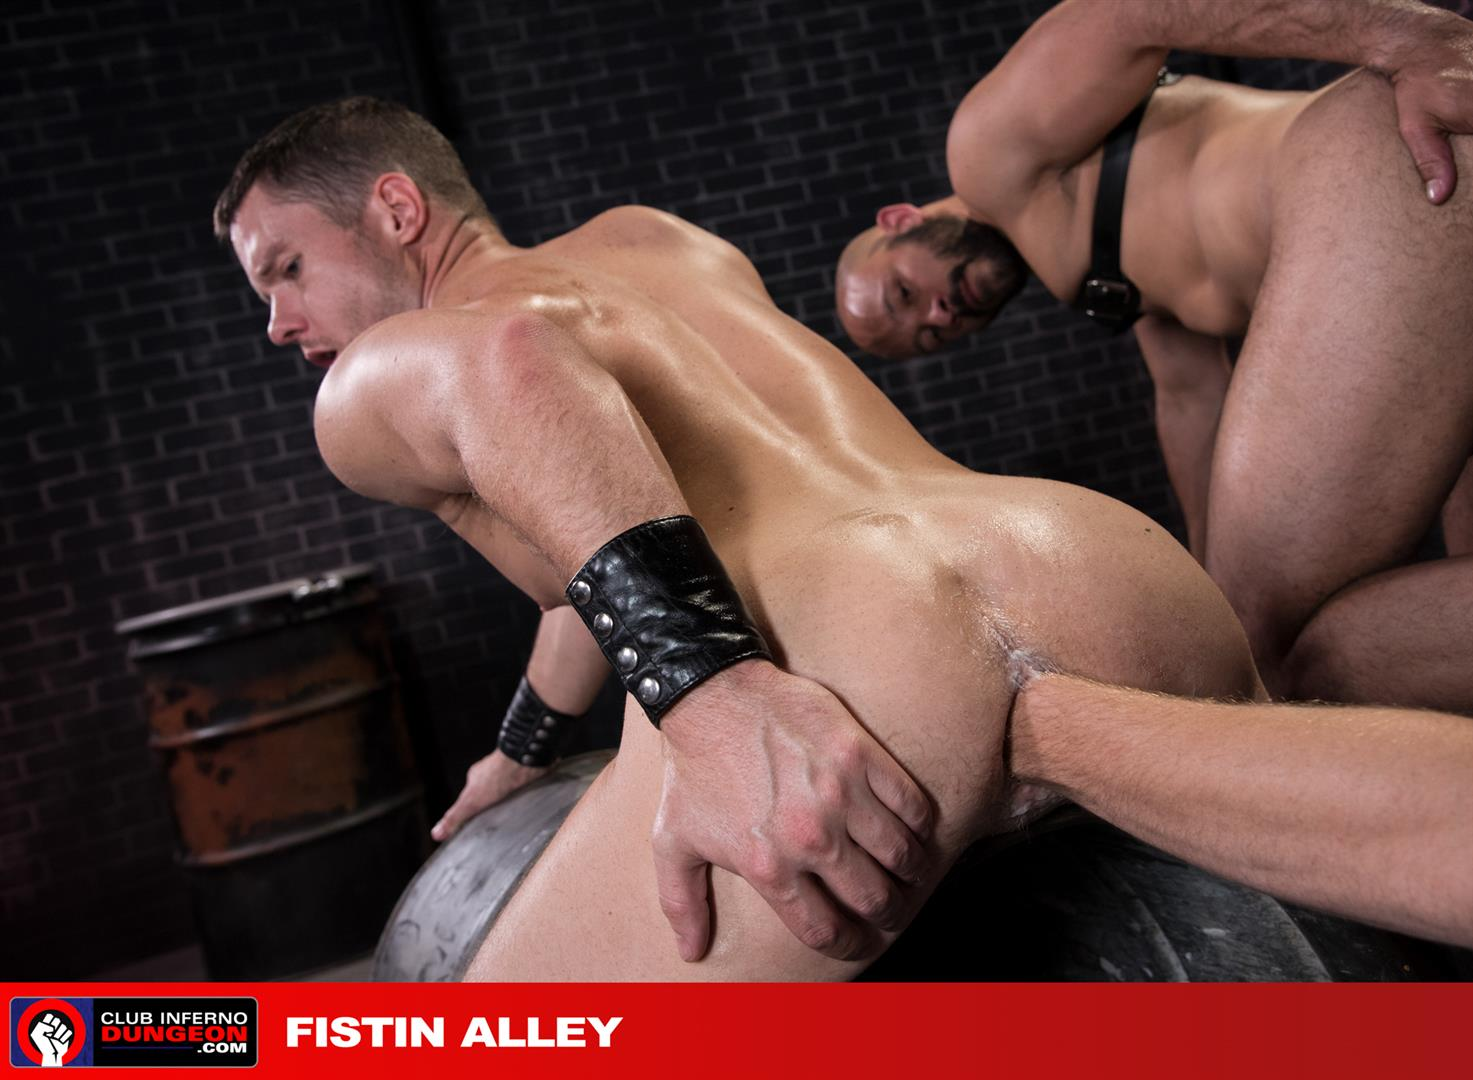 Club-Inferno-Dungeon-Sebastian-Keys-and-Dylan-Strokes-and-Ashley-Ryder-Fisting-10 Sebastian Keys and Ashley Ryder Get Their Asses Fisted